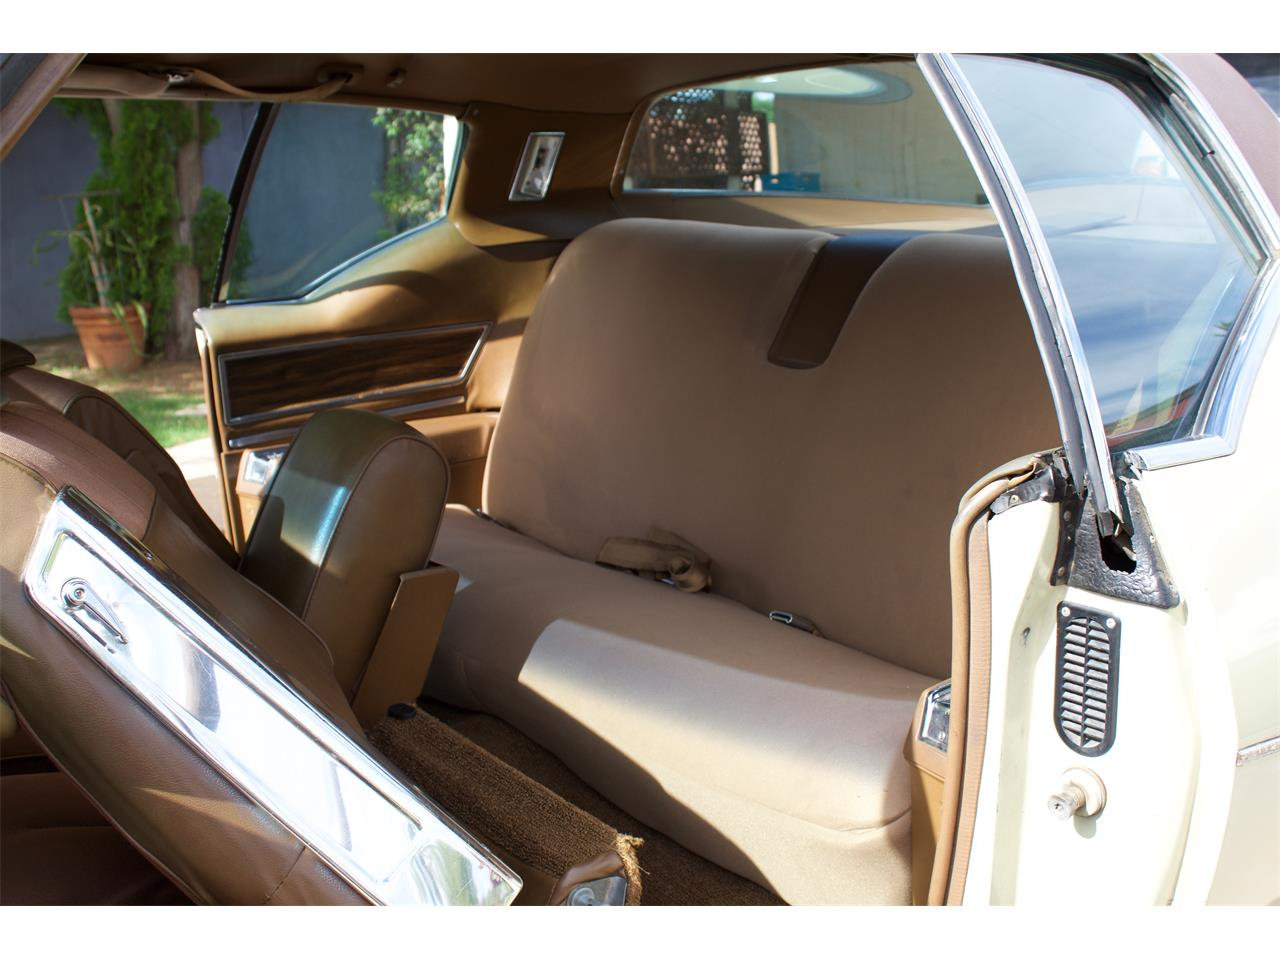 Large Picture of Classic 1972 Buick Riviera - $17,000.00 Offered by a Private Seller - OOZF